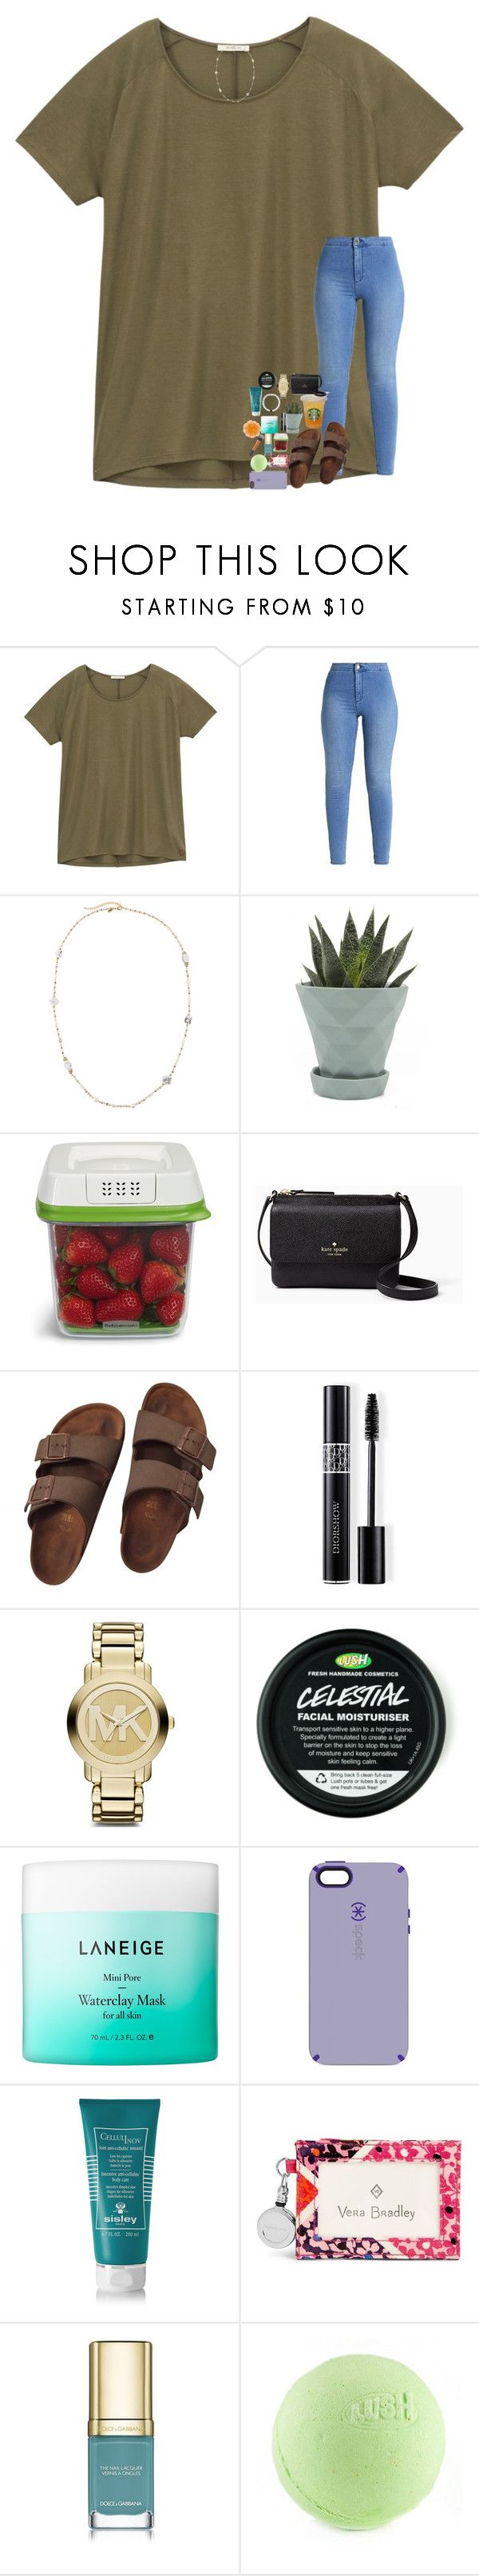 """""""Goodnight everyone! 😴 💤"""" by lovelyelegantgirl ❤ liked on Polyvore featuring Lee, Emily & Ashley, Chive, Rubbermaid, Kate Spade, Birkenstock, Christian Dior, Michael Kors, Laneige and Speck"""